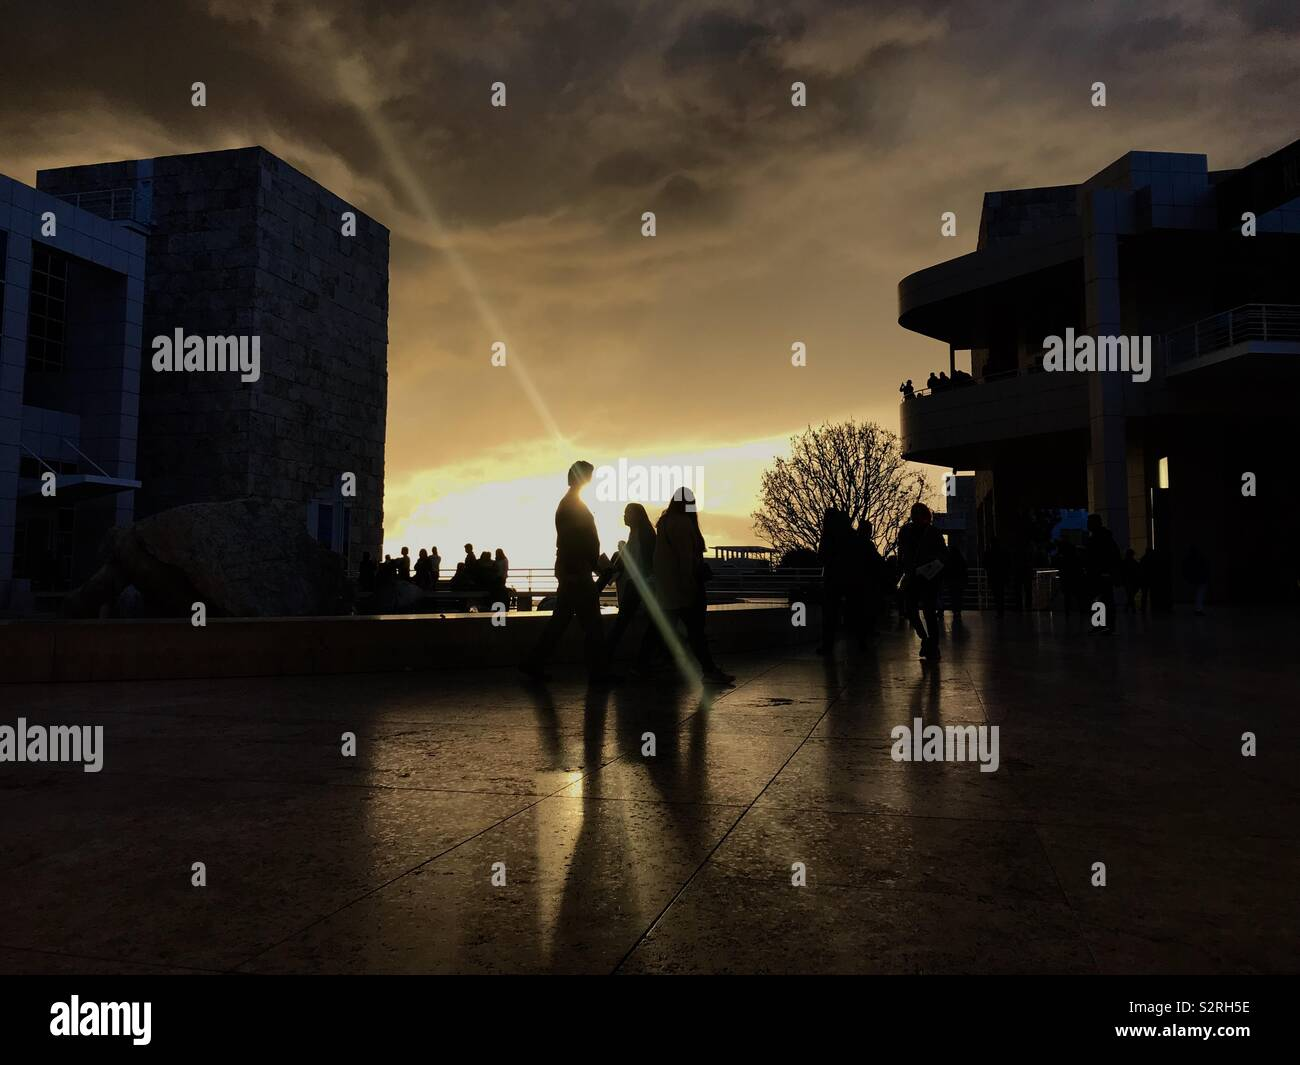 Sonnenuntergang am Getty Center in Los Angeles, CA nach dem Sturm. Stockfoto